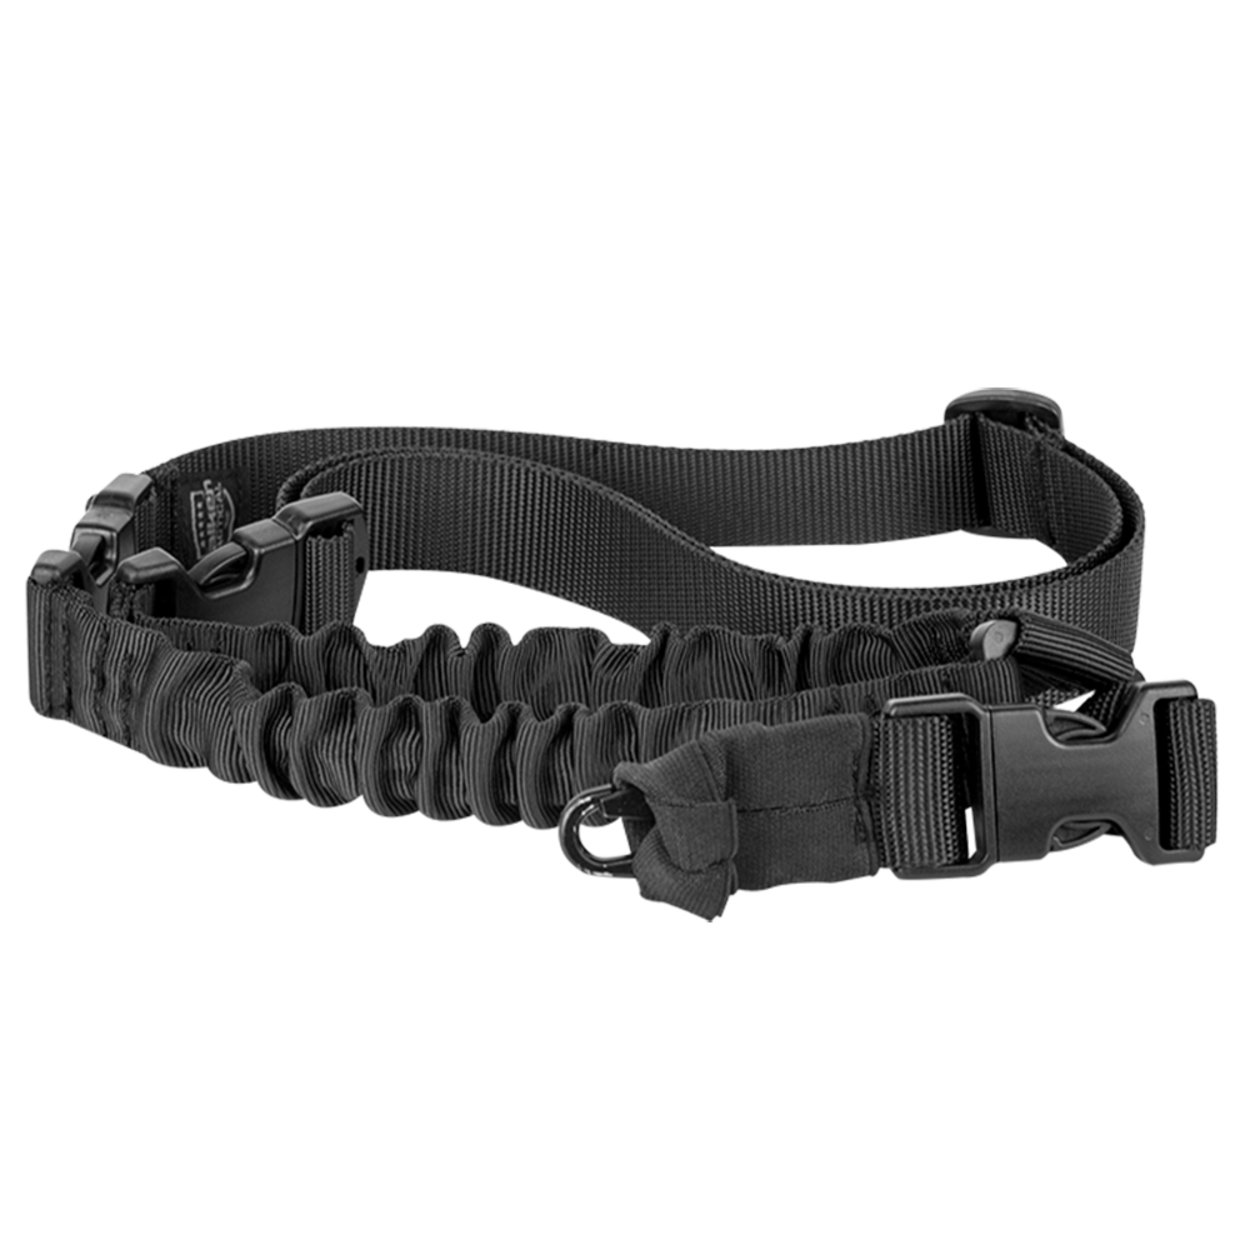 Valken Kilo Single Point Sling